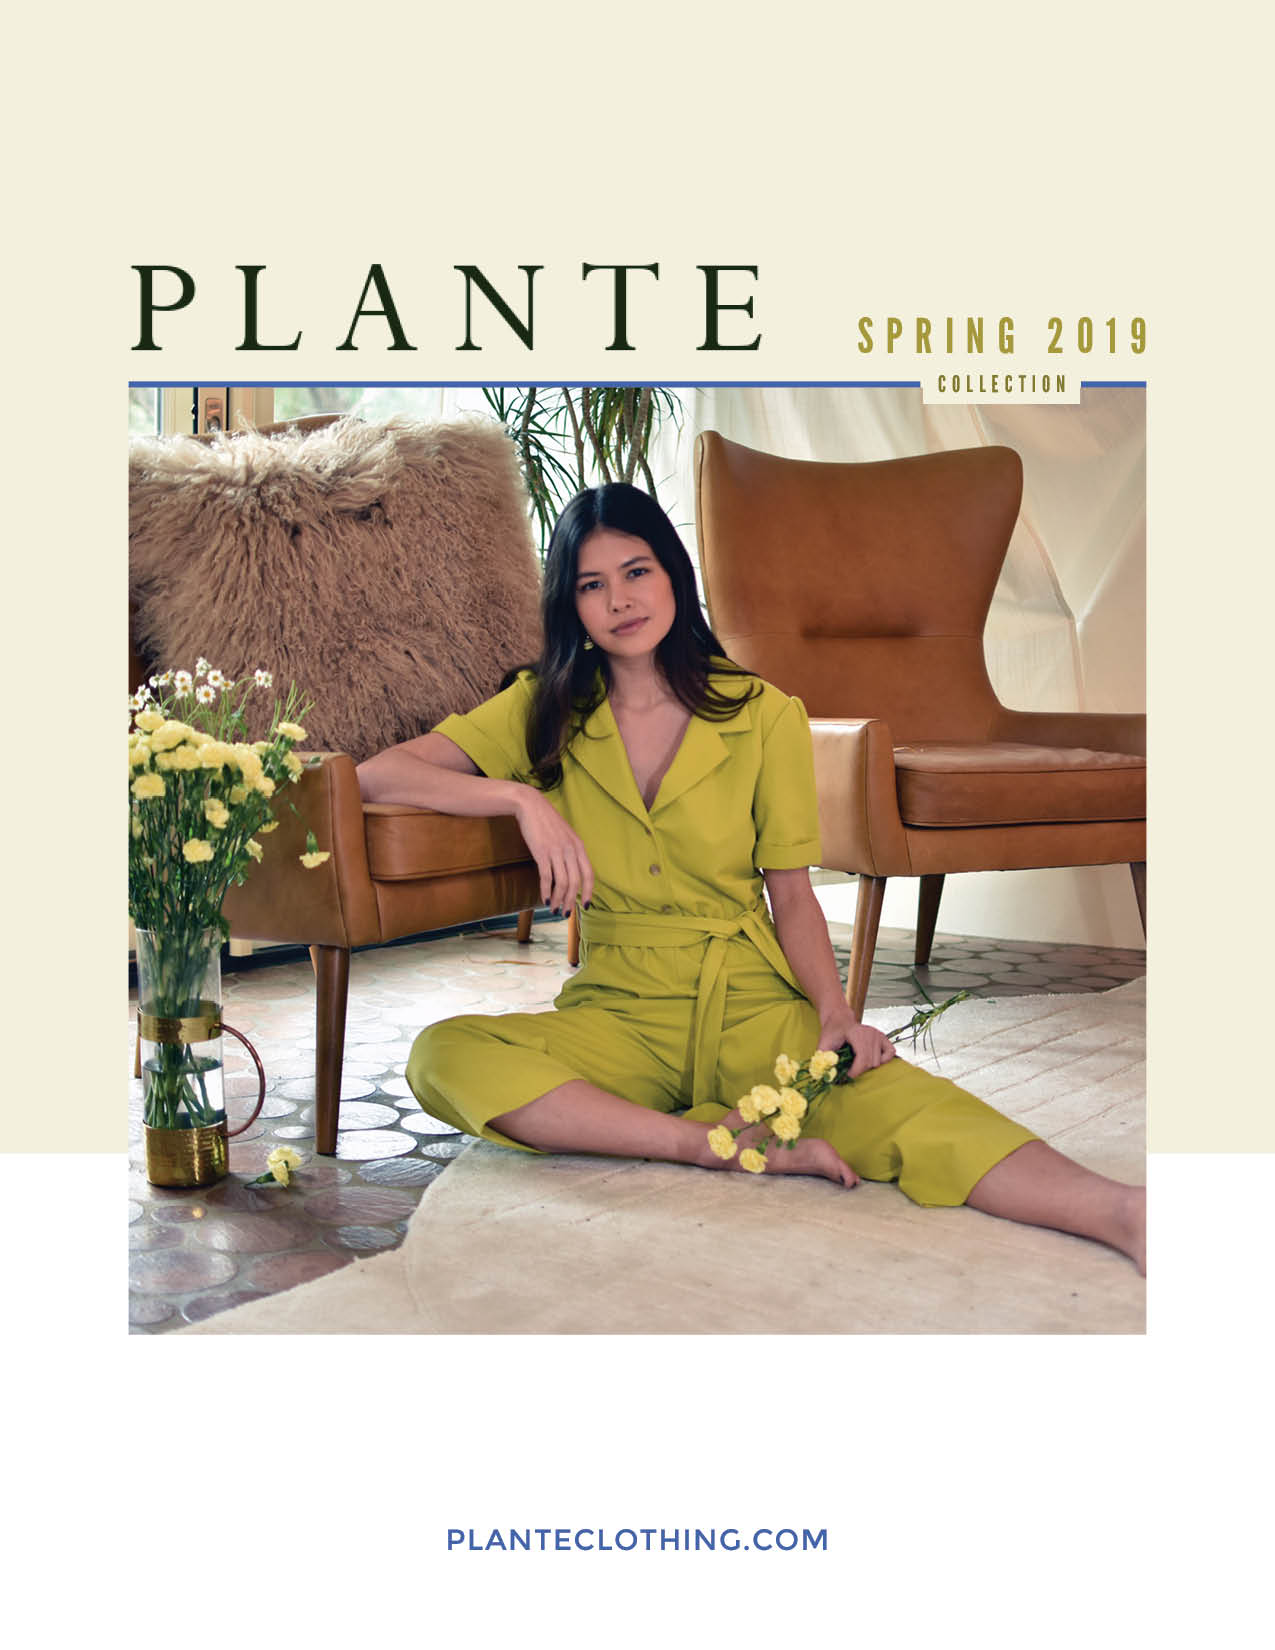 Plante-March-2019-Delivery.jpg